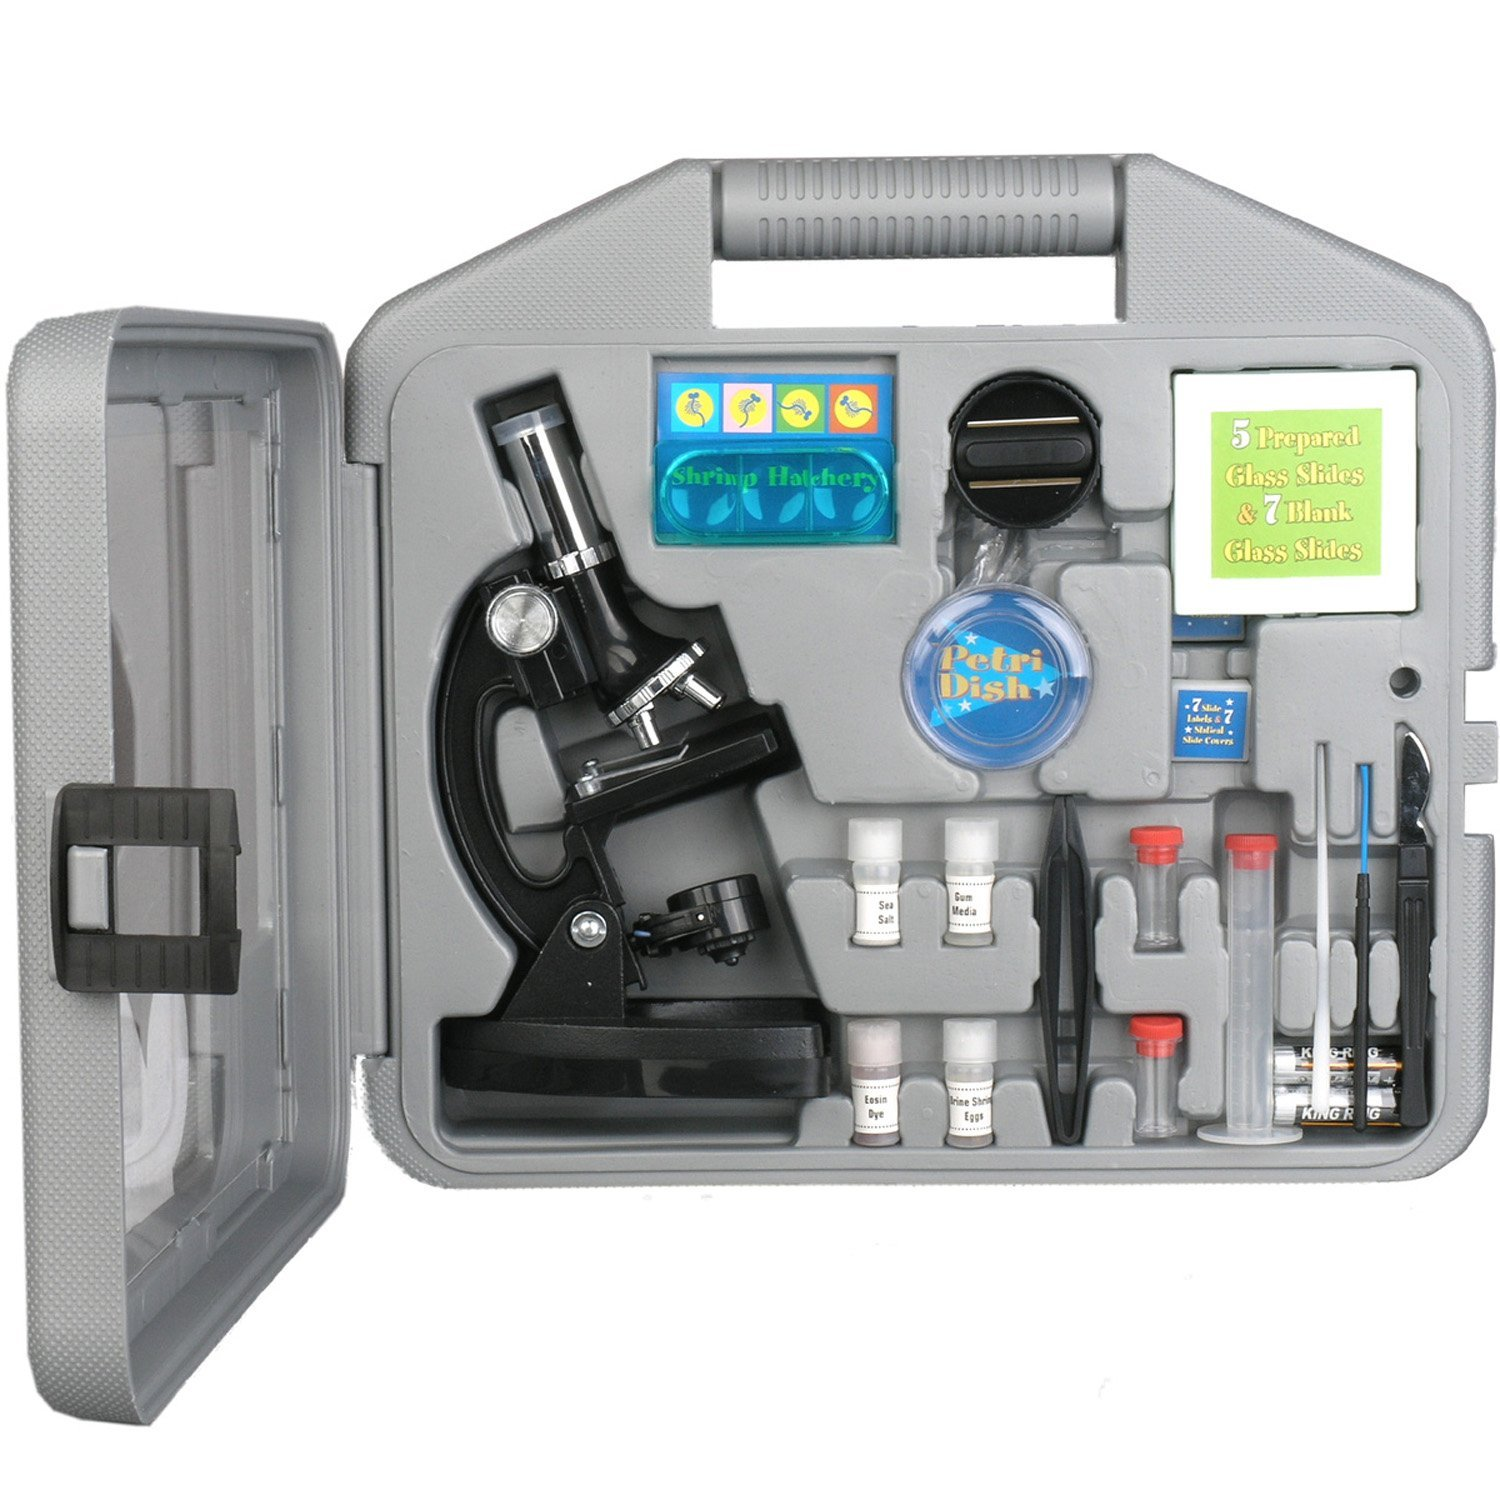 AMSCOPE-KIDS M30-ABS-KT2 Starter Microscope Kit, Metal Frame, 120X, 240X, 300X, 480X, 600X, and 1200X Magnifications, 2 Eyepieces and 49 Accessories and Case